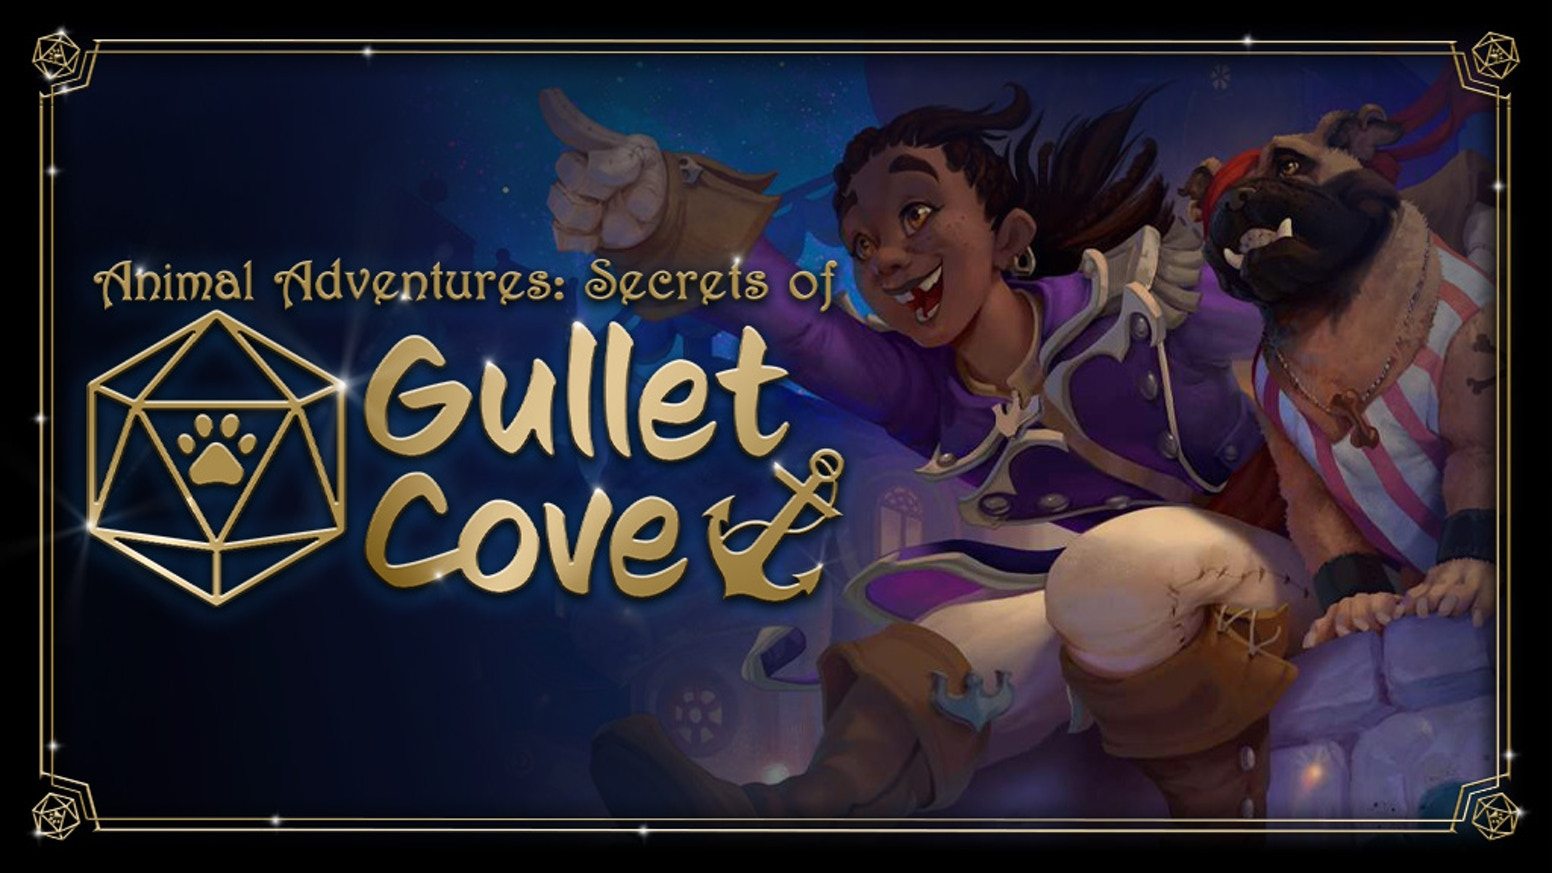 Introducing Gullet Cove, a magical campaign setting for 5e DnD that brings new cat, dog & monster minis to life for your tabletop RPG!